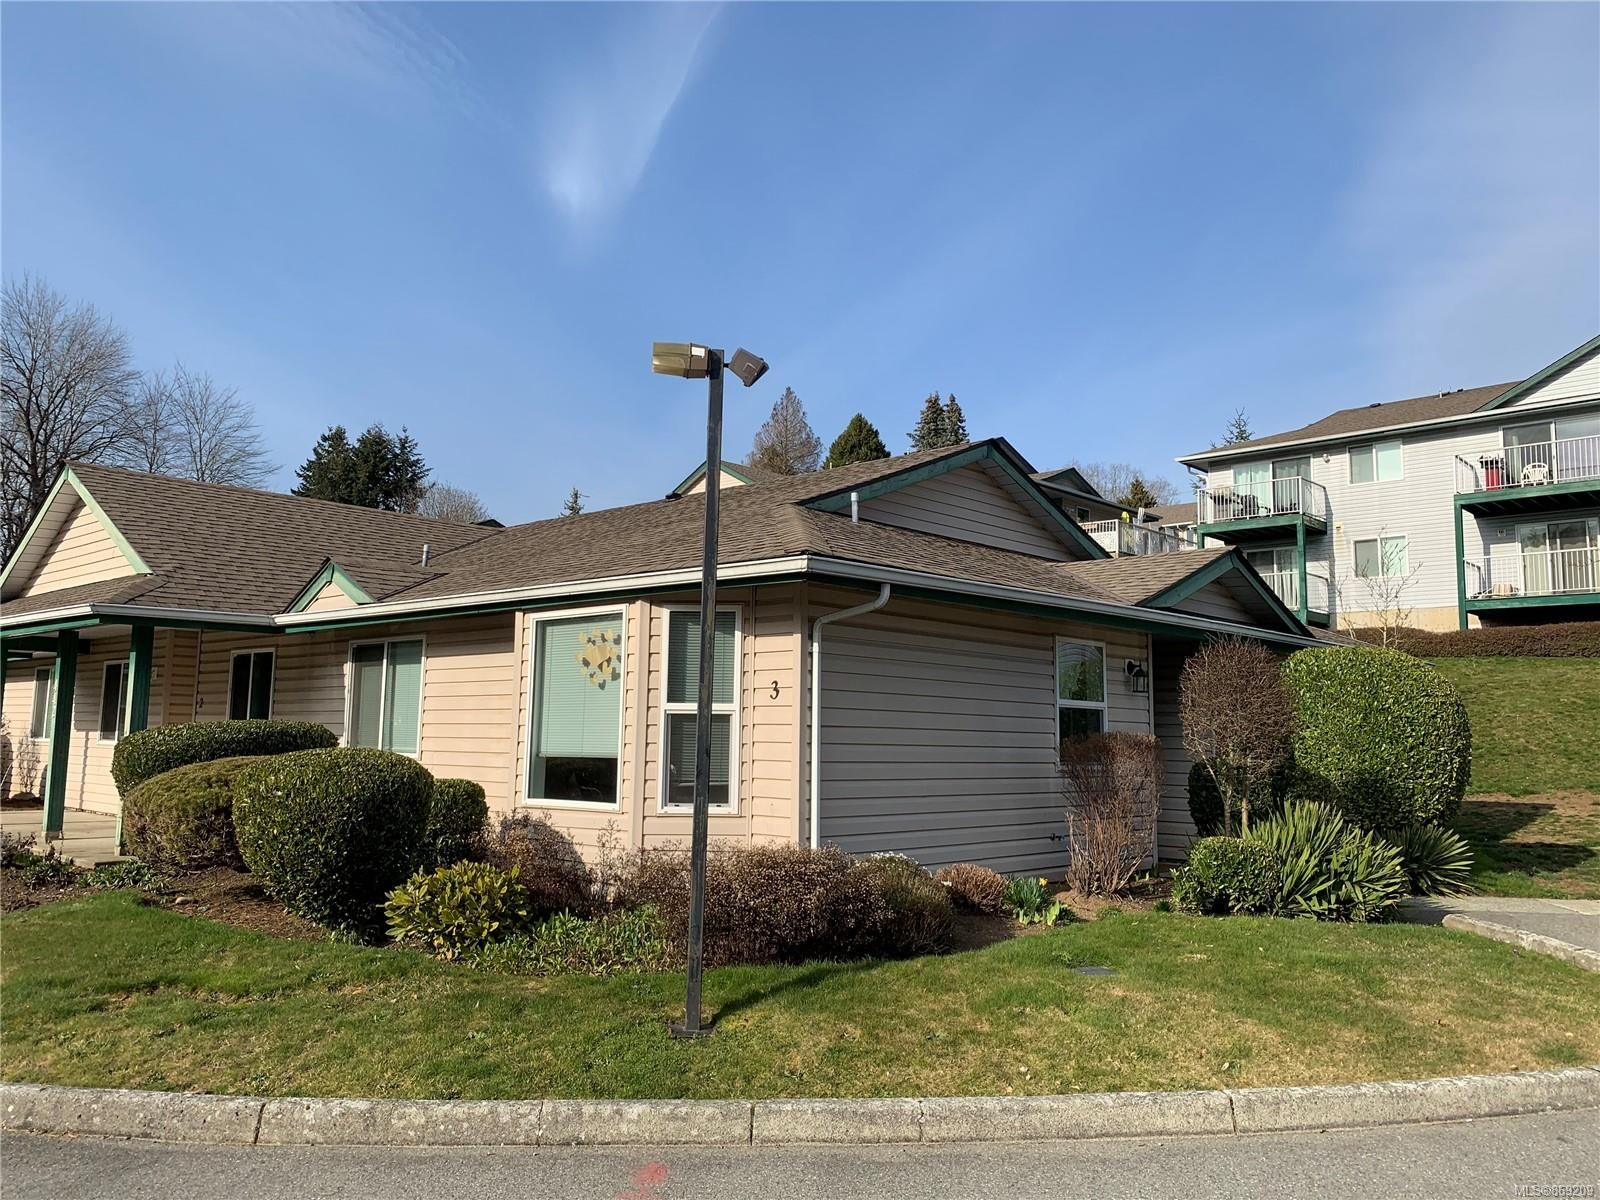 Main Photo: 3 442 Gail Pl in : Na South Nanaimo Row/Townhouse for sale (Nanaimo)  : MLS®# 869209